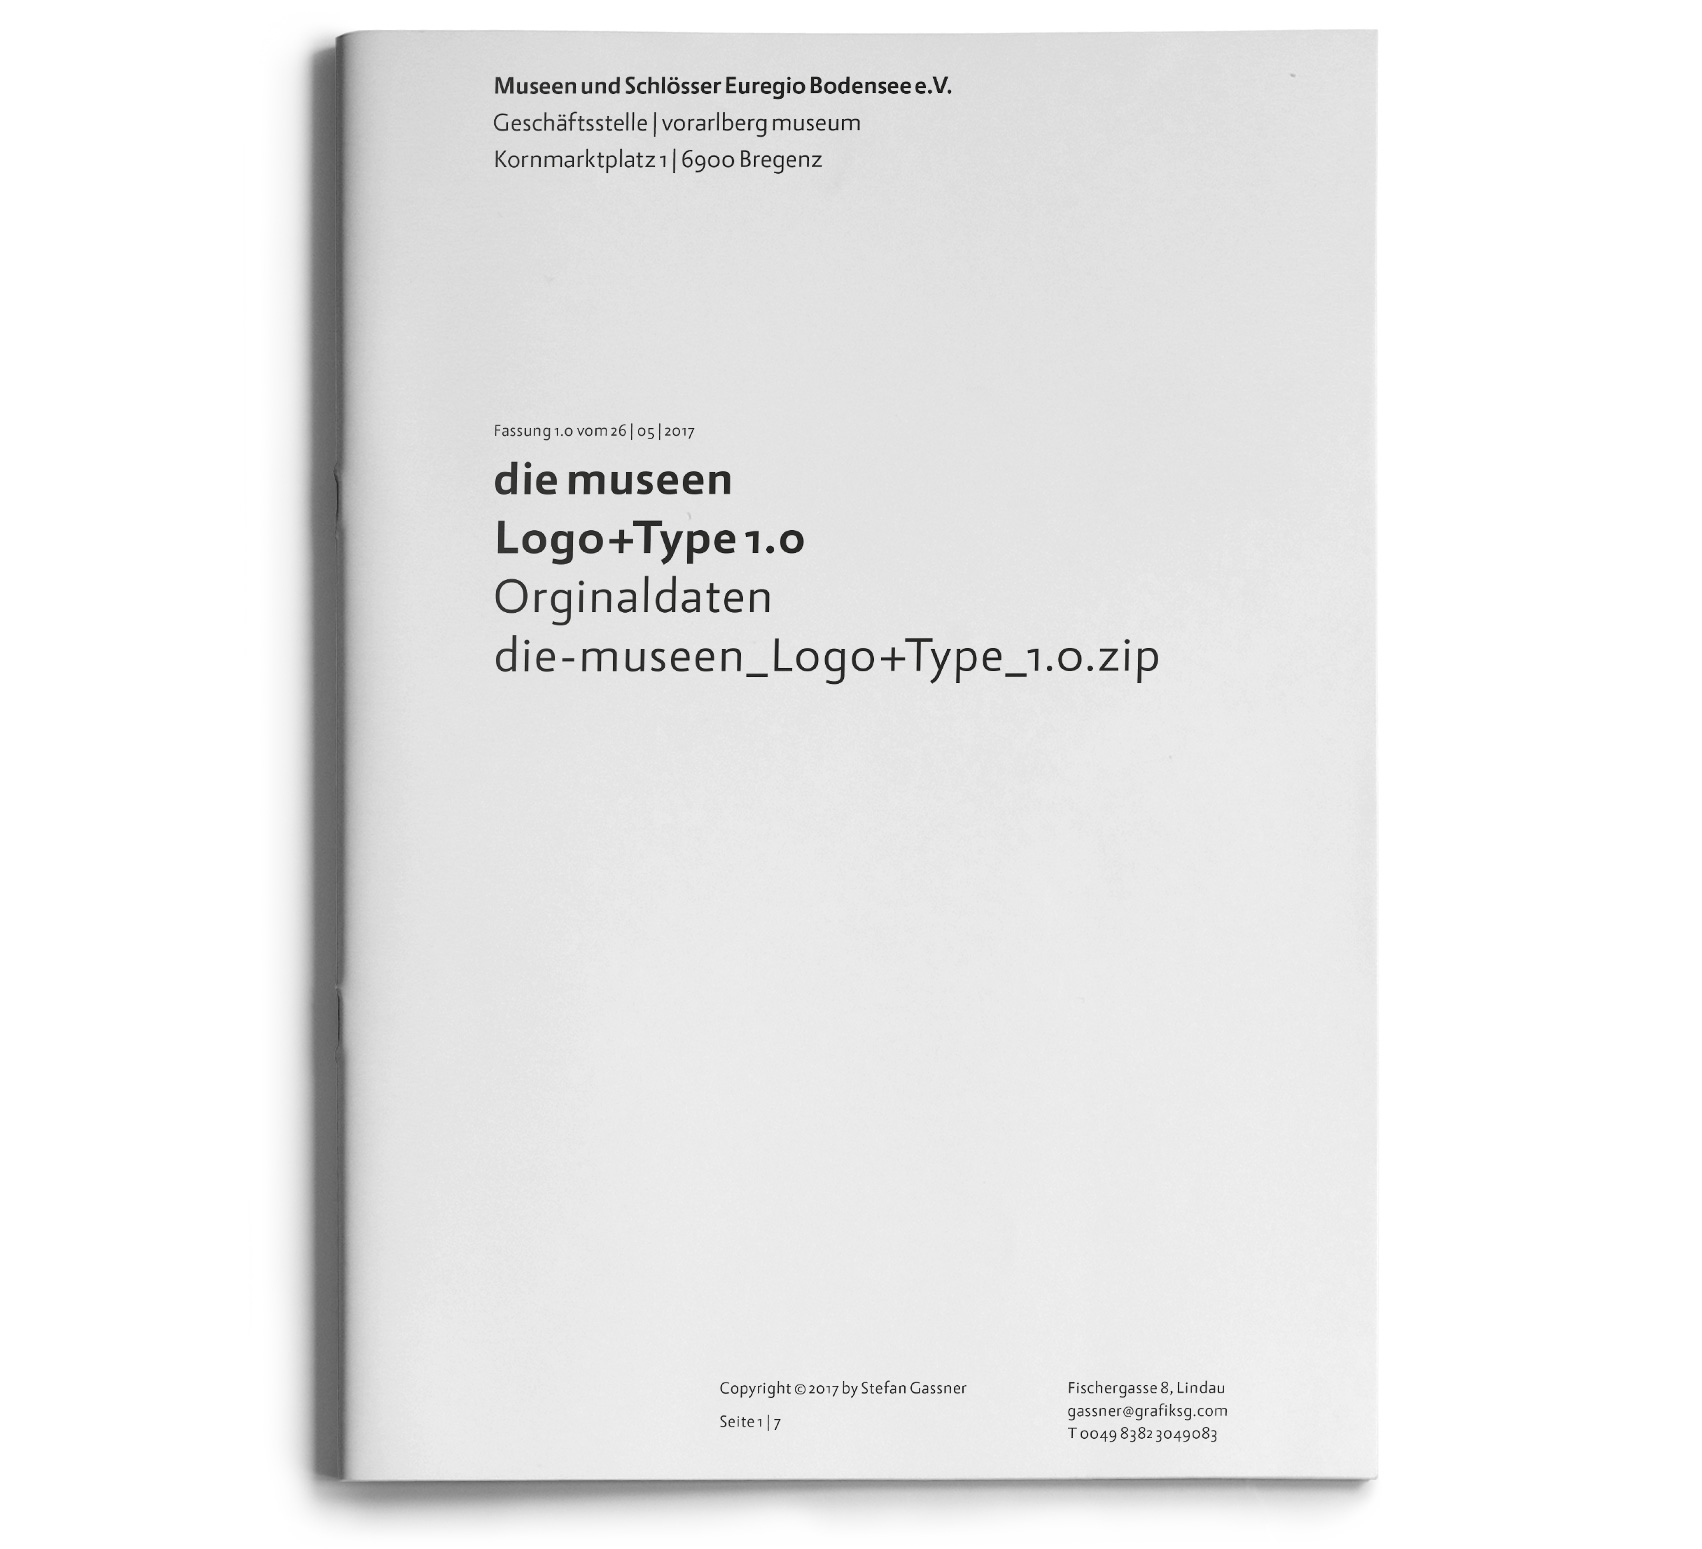 die-museen_logotype_1.0_manual_icon